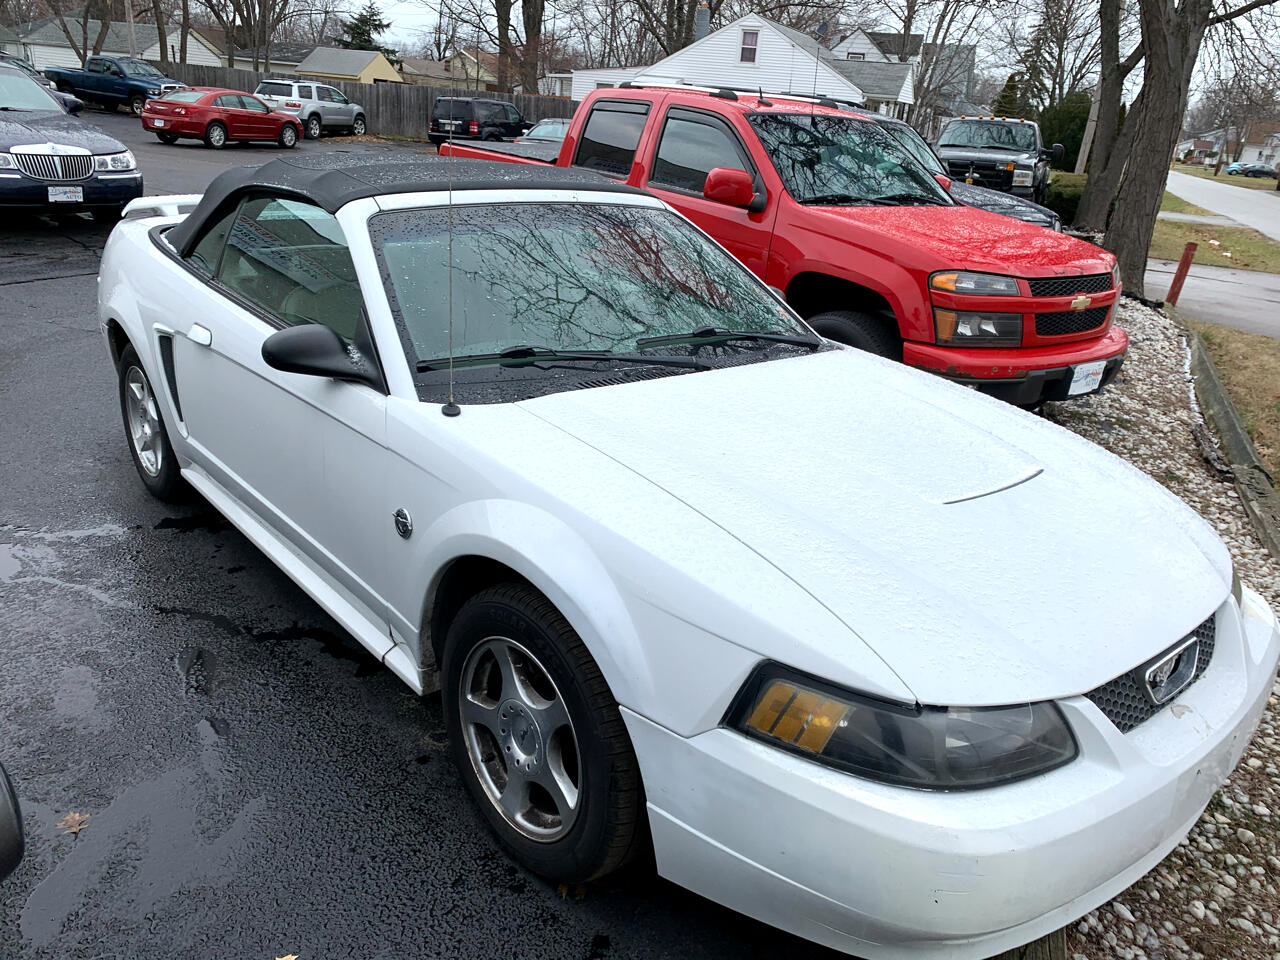 Ford Mustang Deluxe Convertible 2004